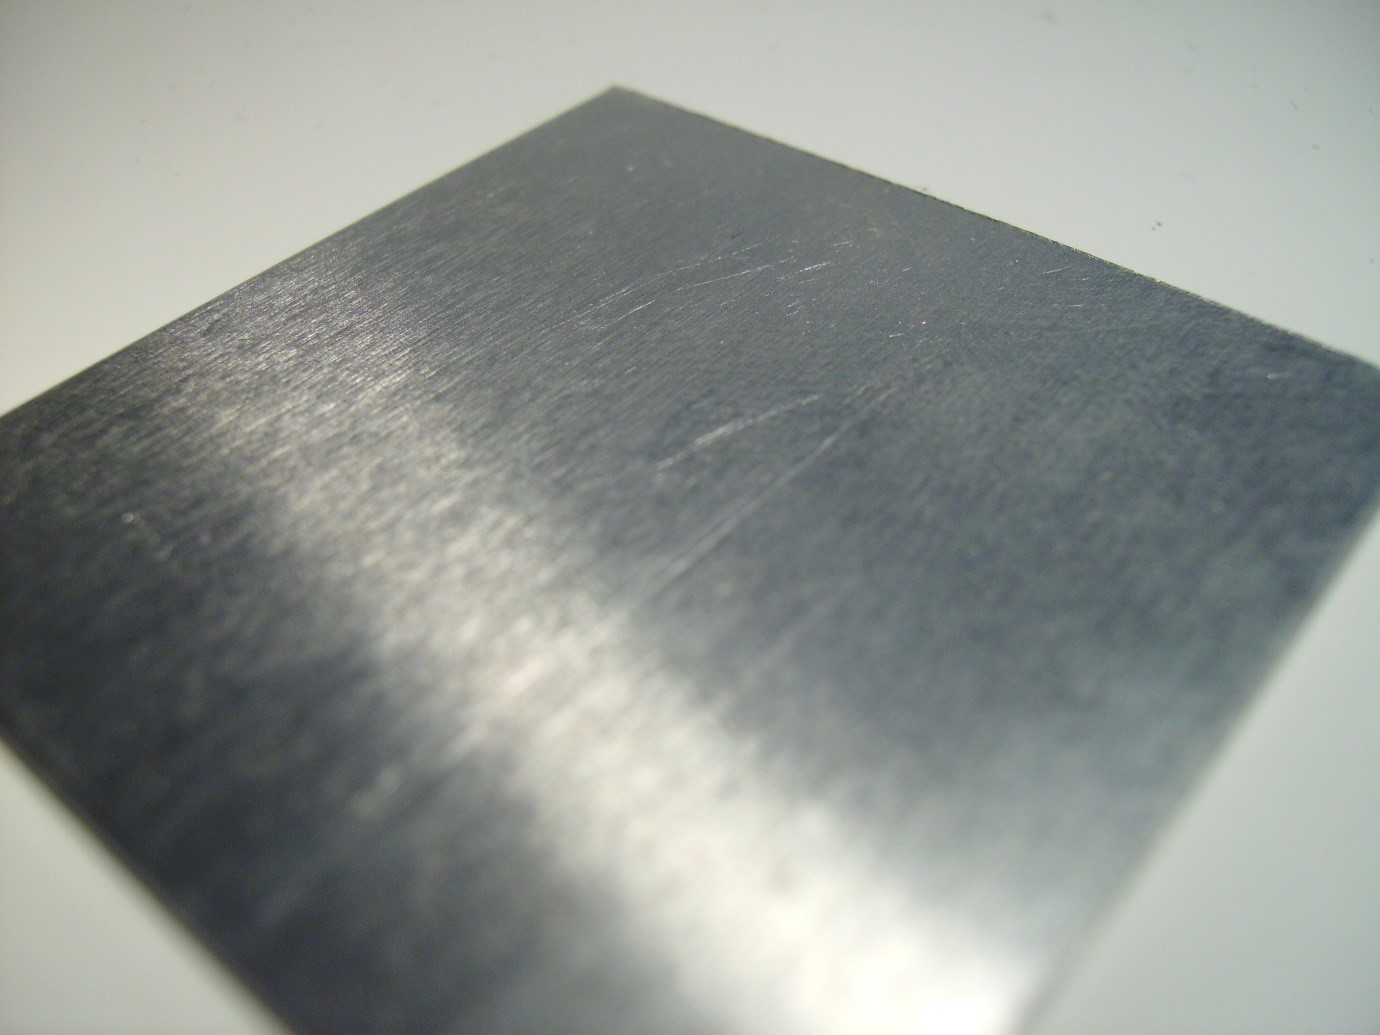 matte stainless steel